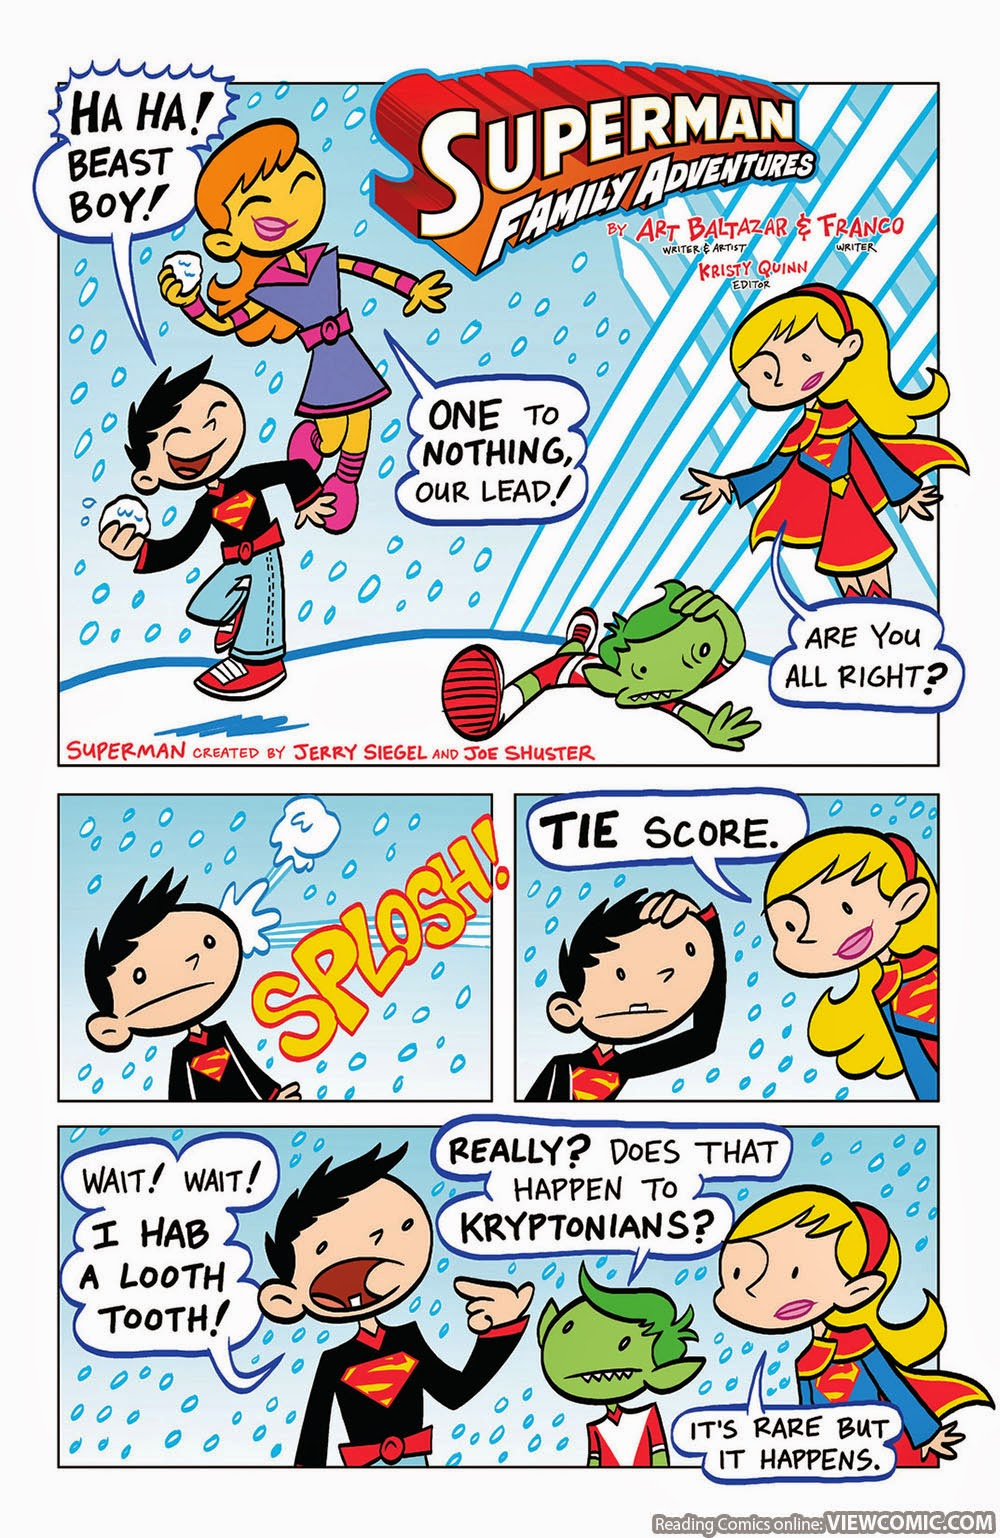 Superman Family Adventures 007 2013 Read Superman Family Adventures 007 2013 Comic Online In High Quality Read Full Comic Online For Free Read Comics Online In High Quality